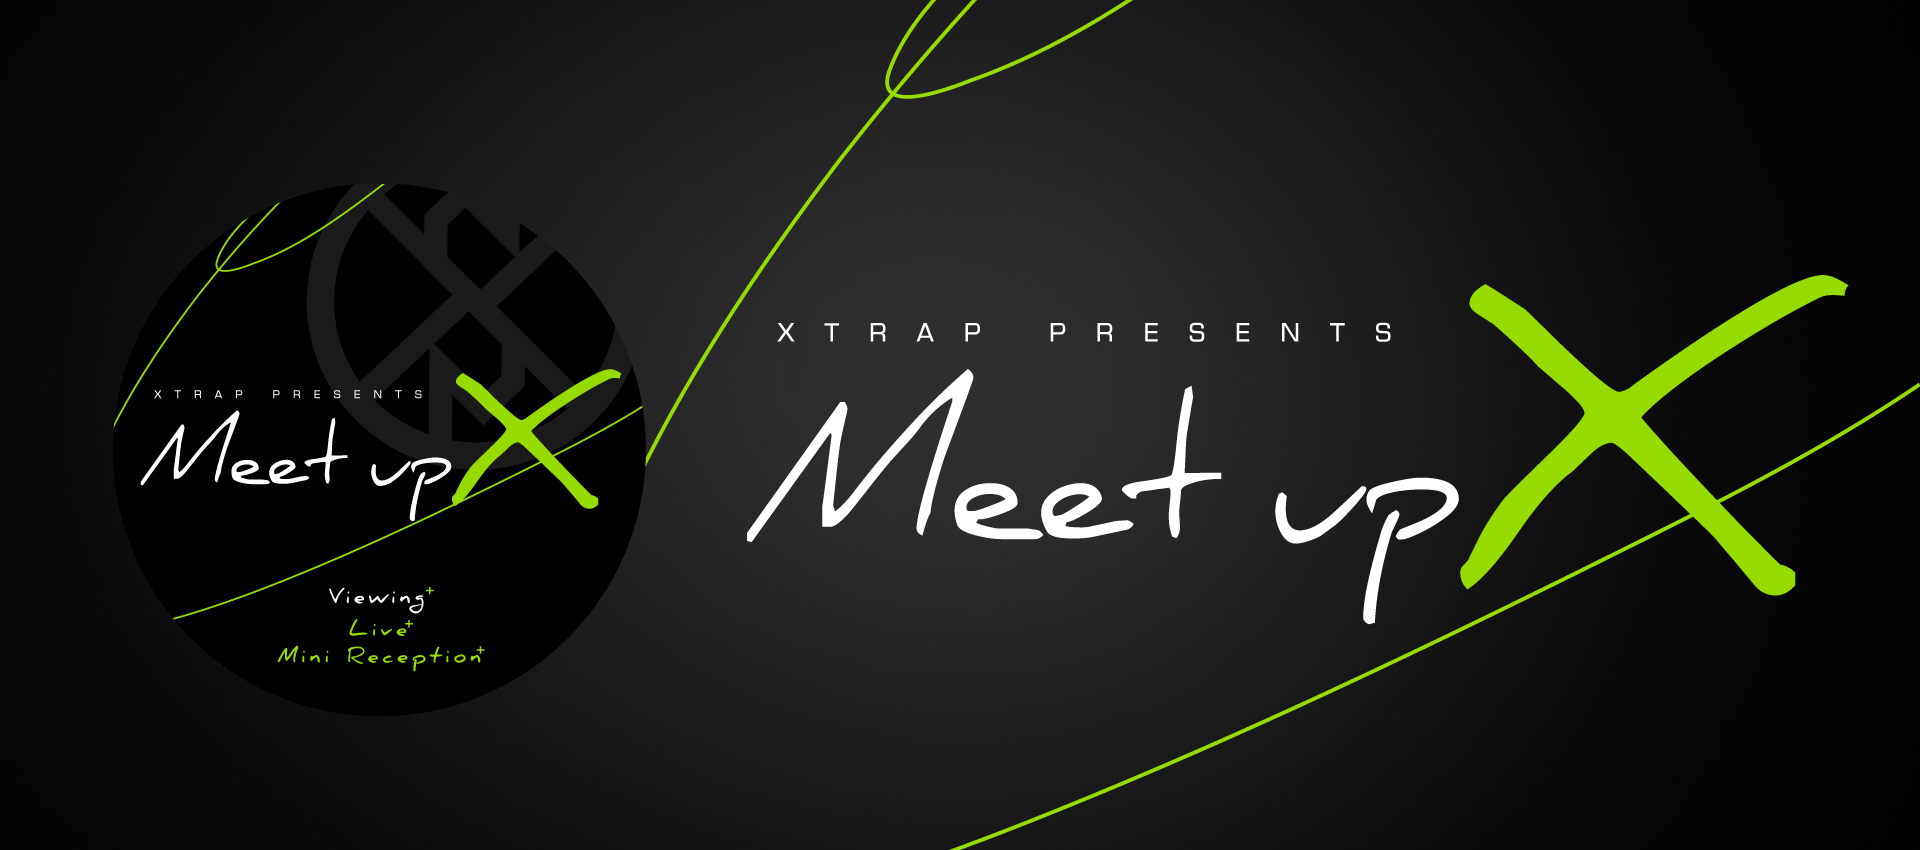 2016/8/30 XTRAP presents 「Meet up X」(終了)